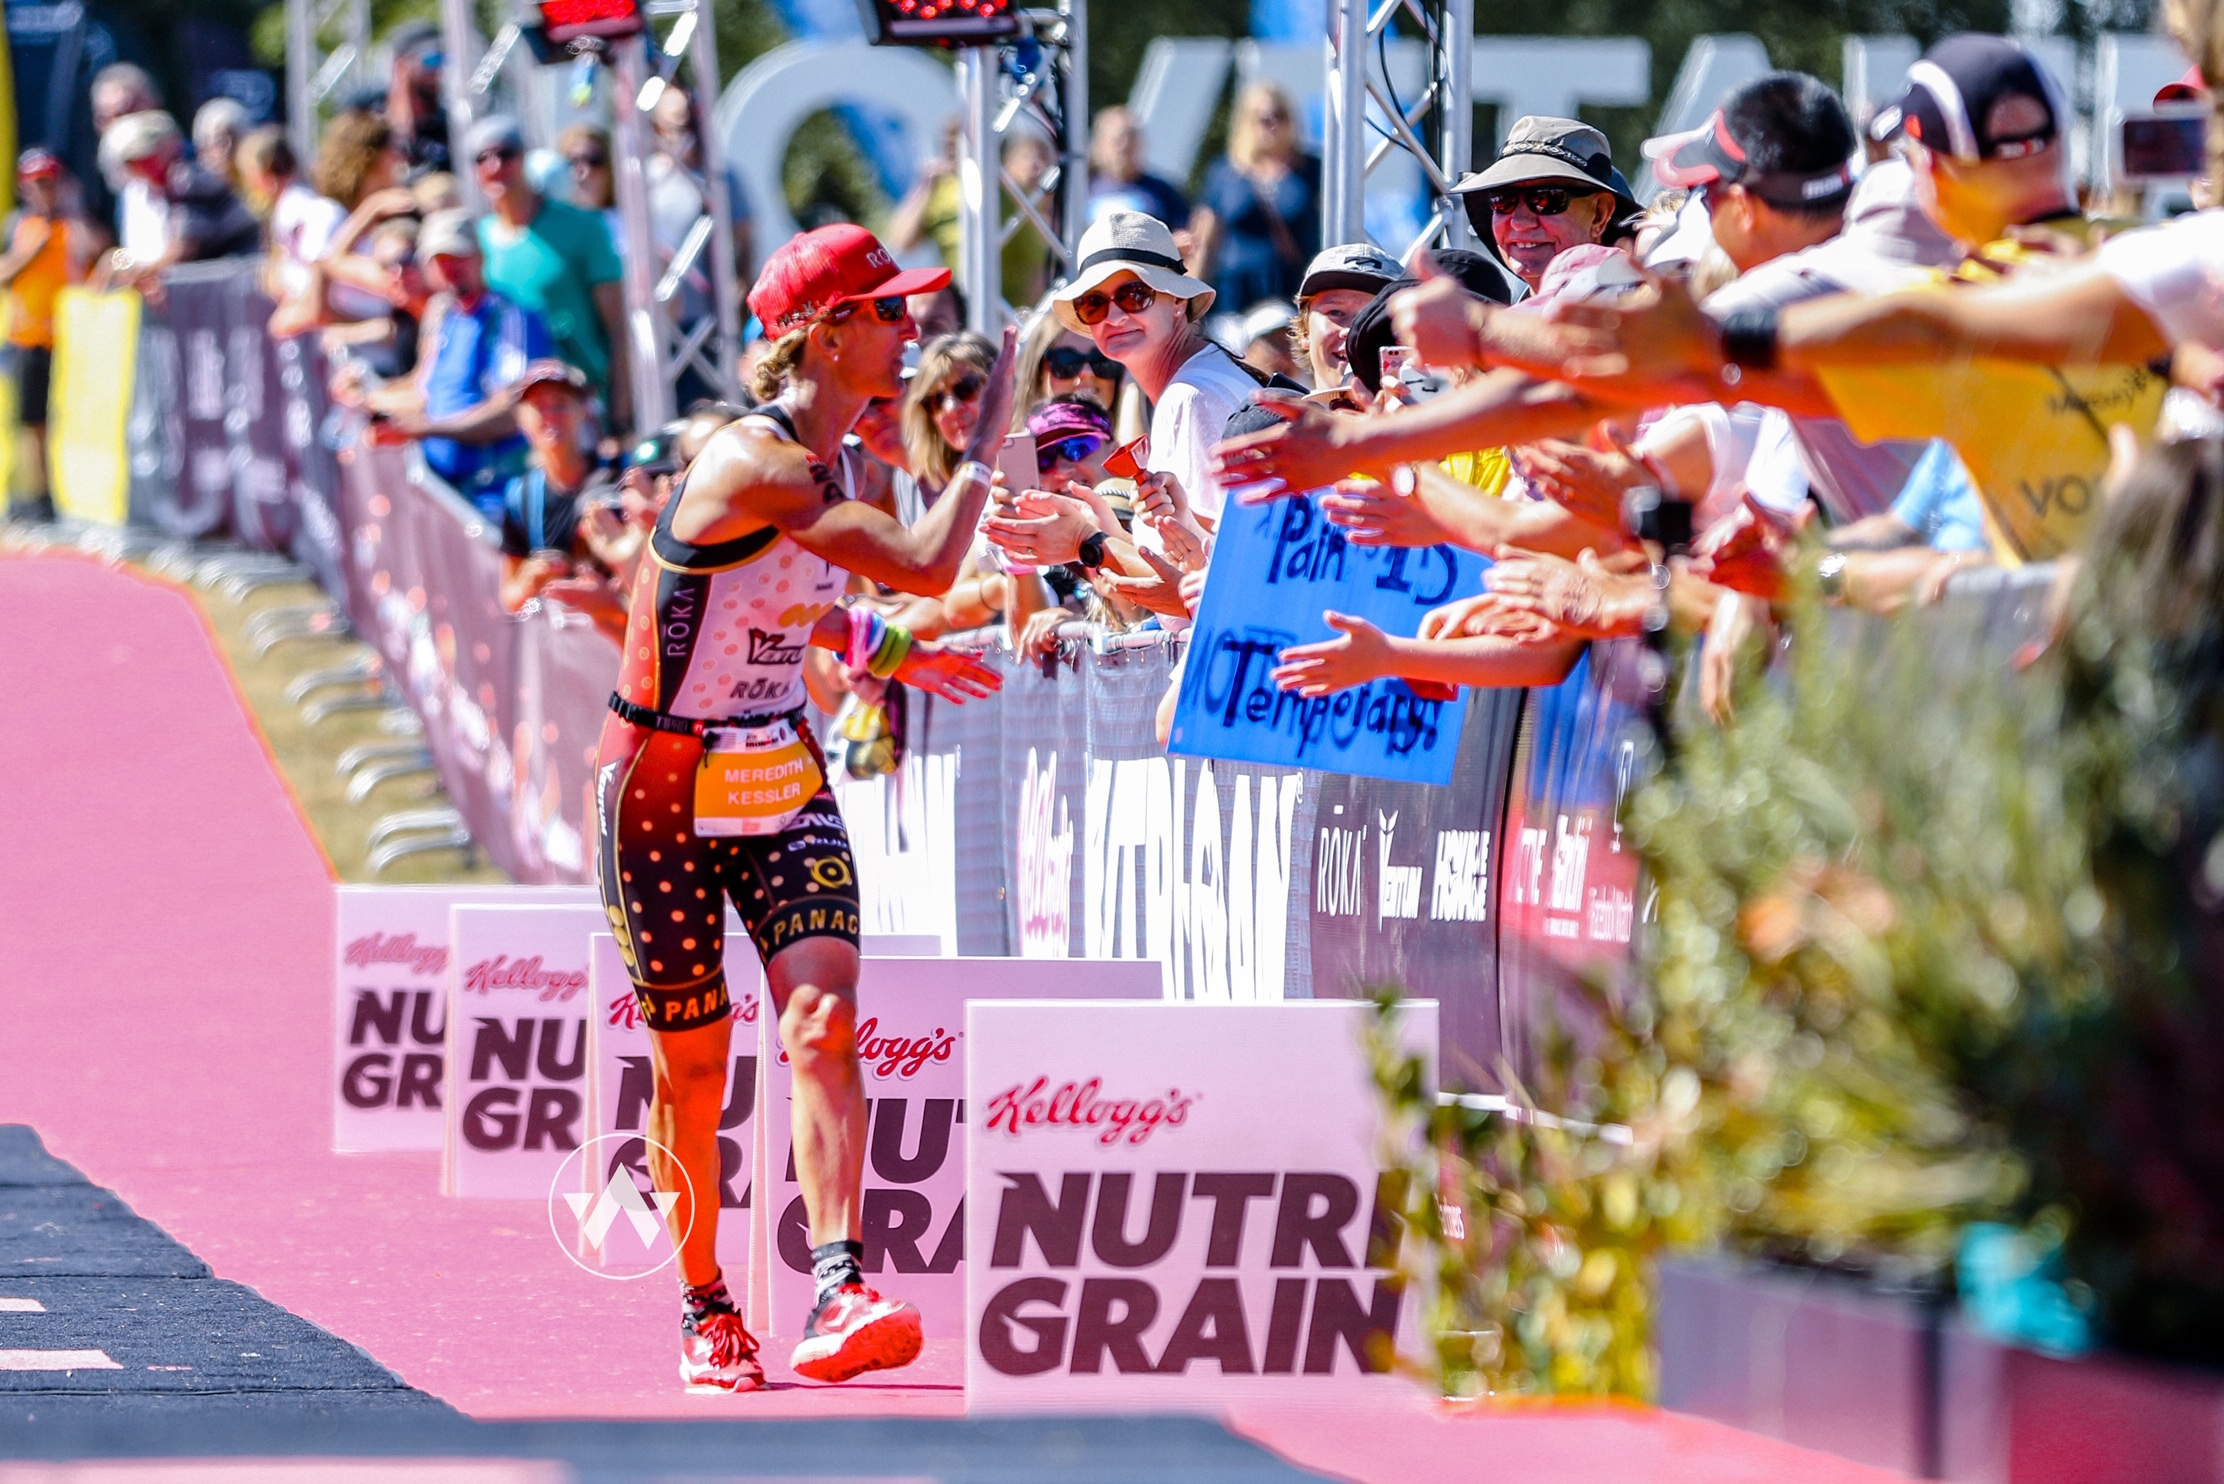 Meredith Kessler Professional Triathlete Finish Line 2019 Ironman New Zealand Finishing Chute Witsup Photo